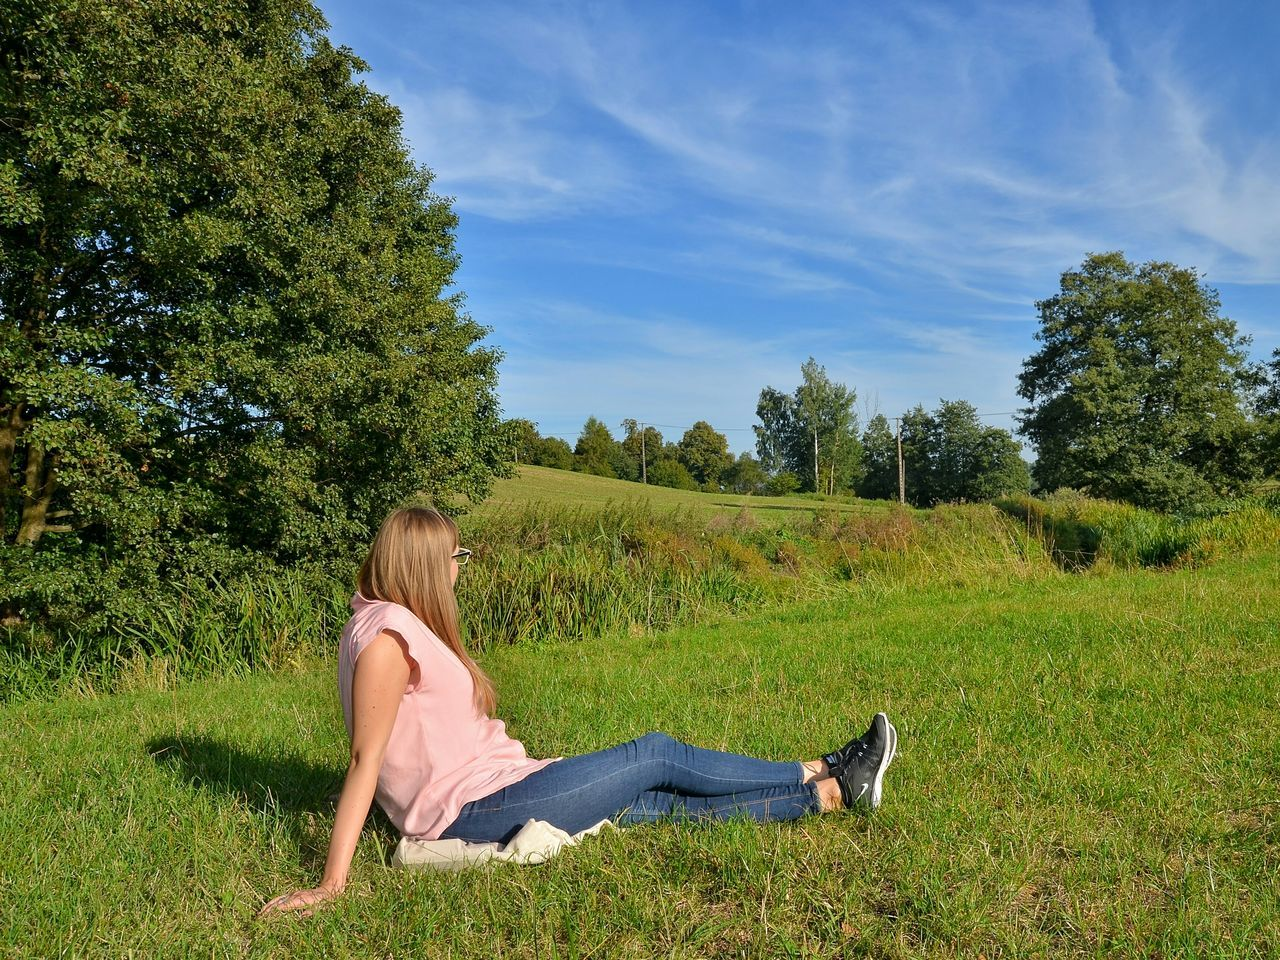 Full Length Summer Tree Only Women One Woman Only One Person Young Adult Outdoors Day Grass Leisure Activity Young Women One Young Woman Only Relaxation Sun Sunnyday Warmia Poland Polska